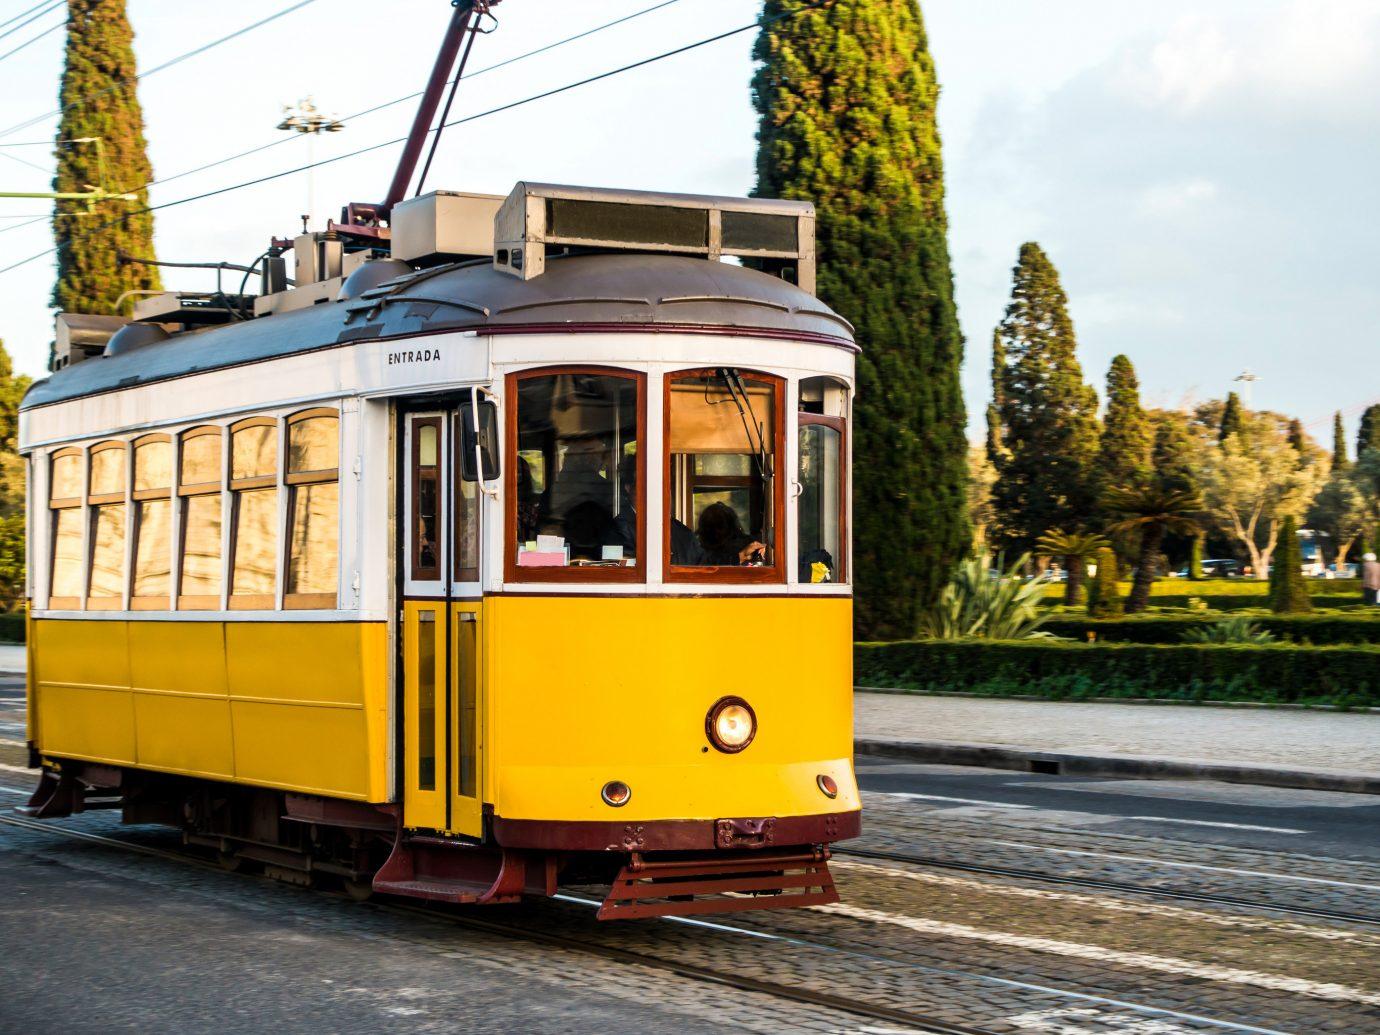 Trip Ideas outdoor sky transport yellow vehicle land vehicle tram track rolling stock cable car train traveling public transport electricity railroad car metropolitan area